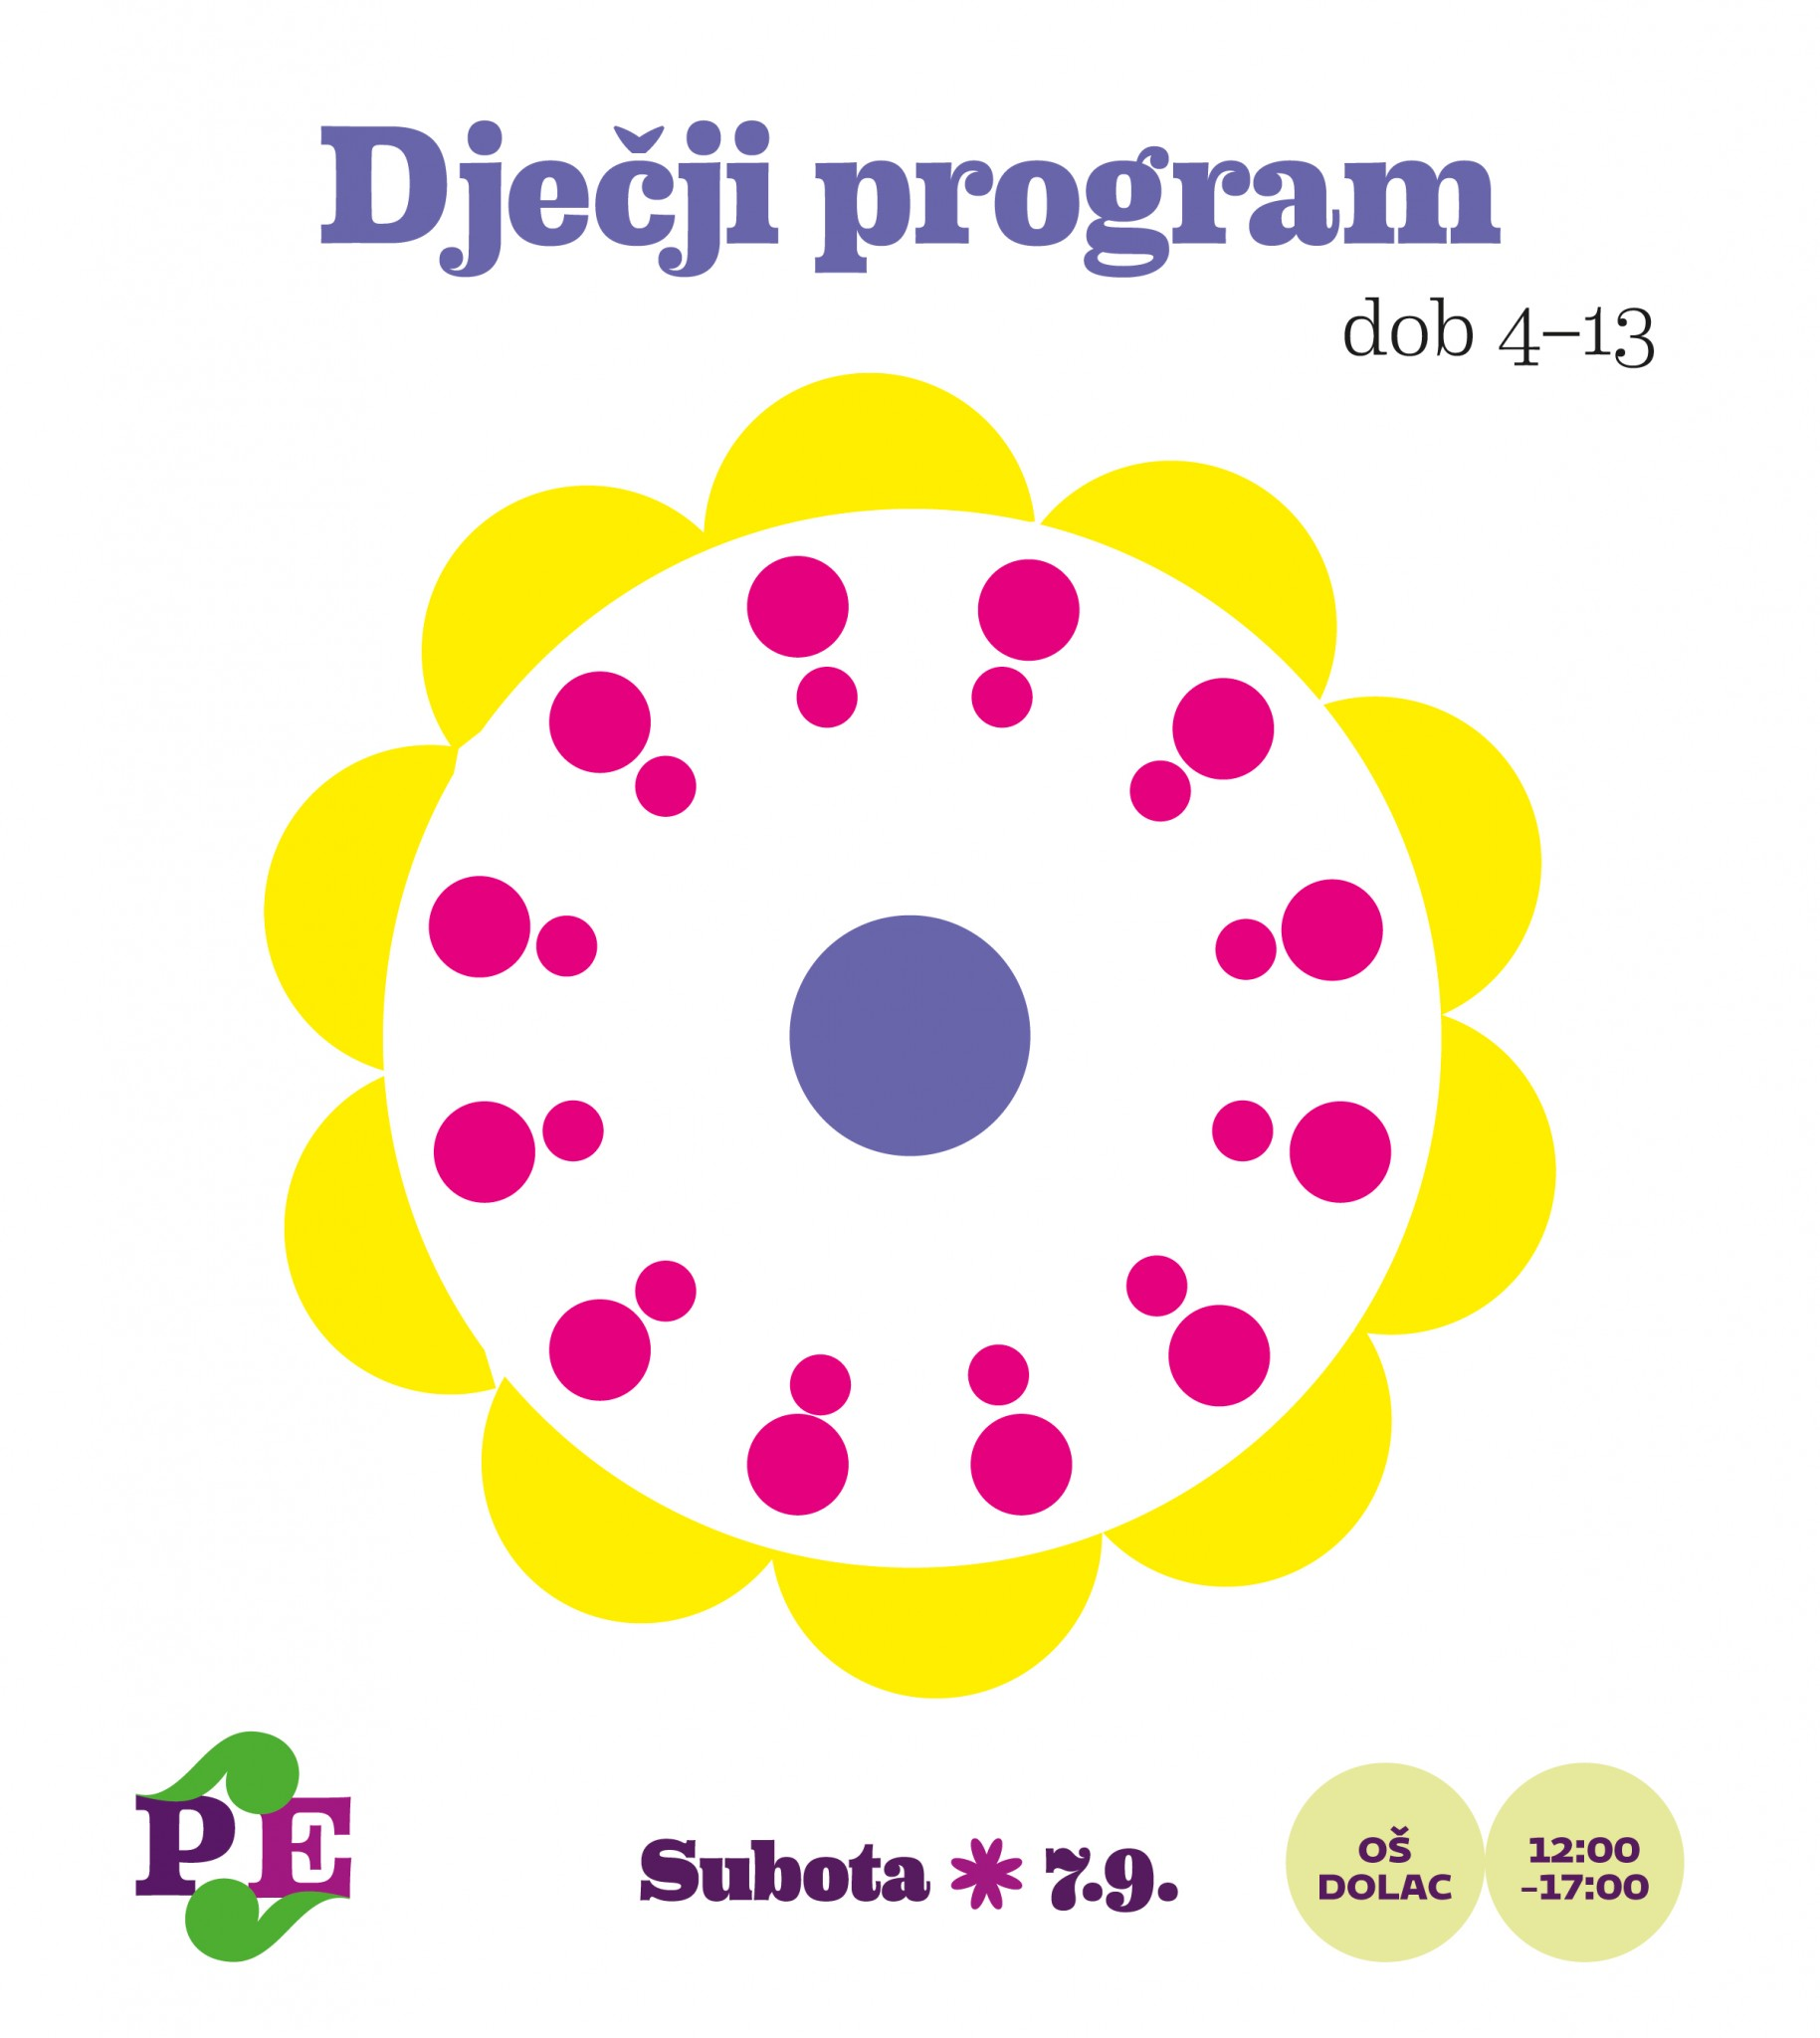 Djecji program